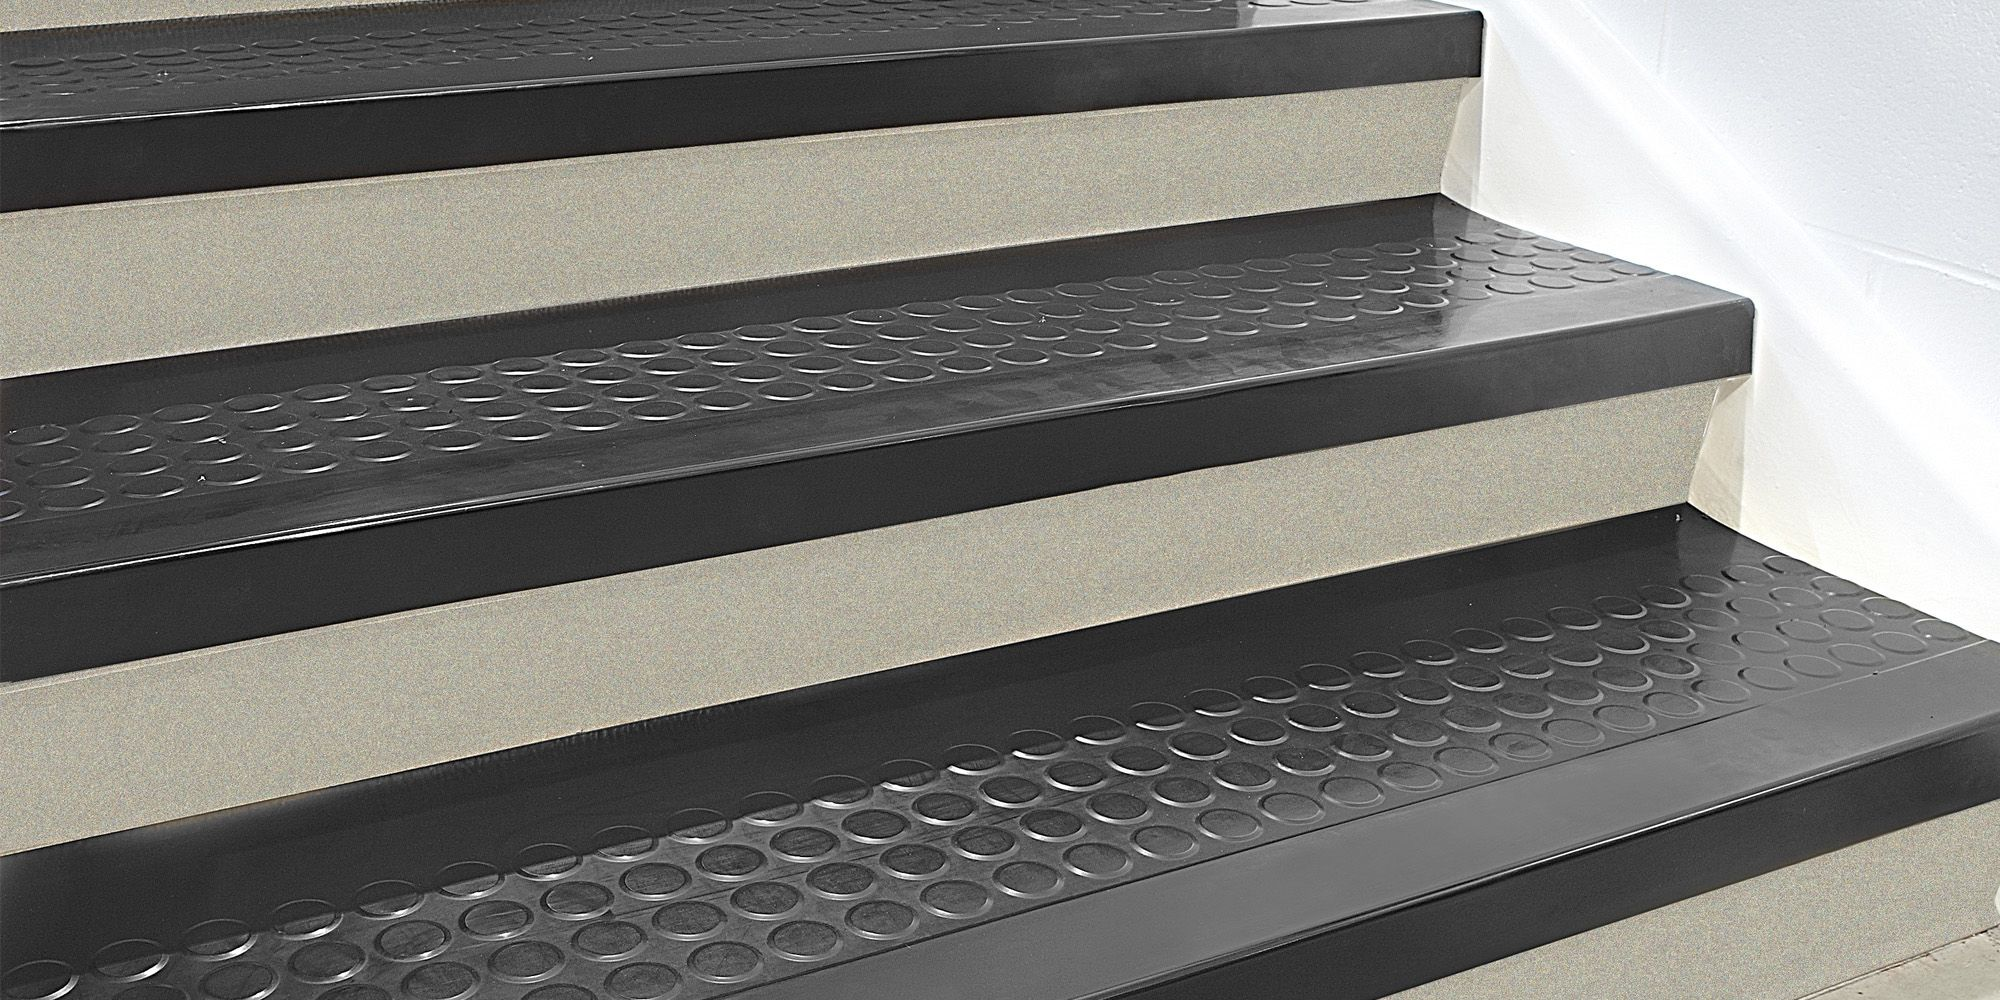 Stair Treads Rubber Stair Treads Vinyl Stair Treads In Stock Uline Stairs Treads And Risers Vinyl Stair Treads Stair Treads